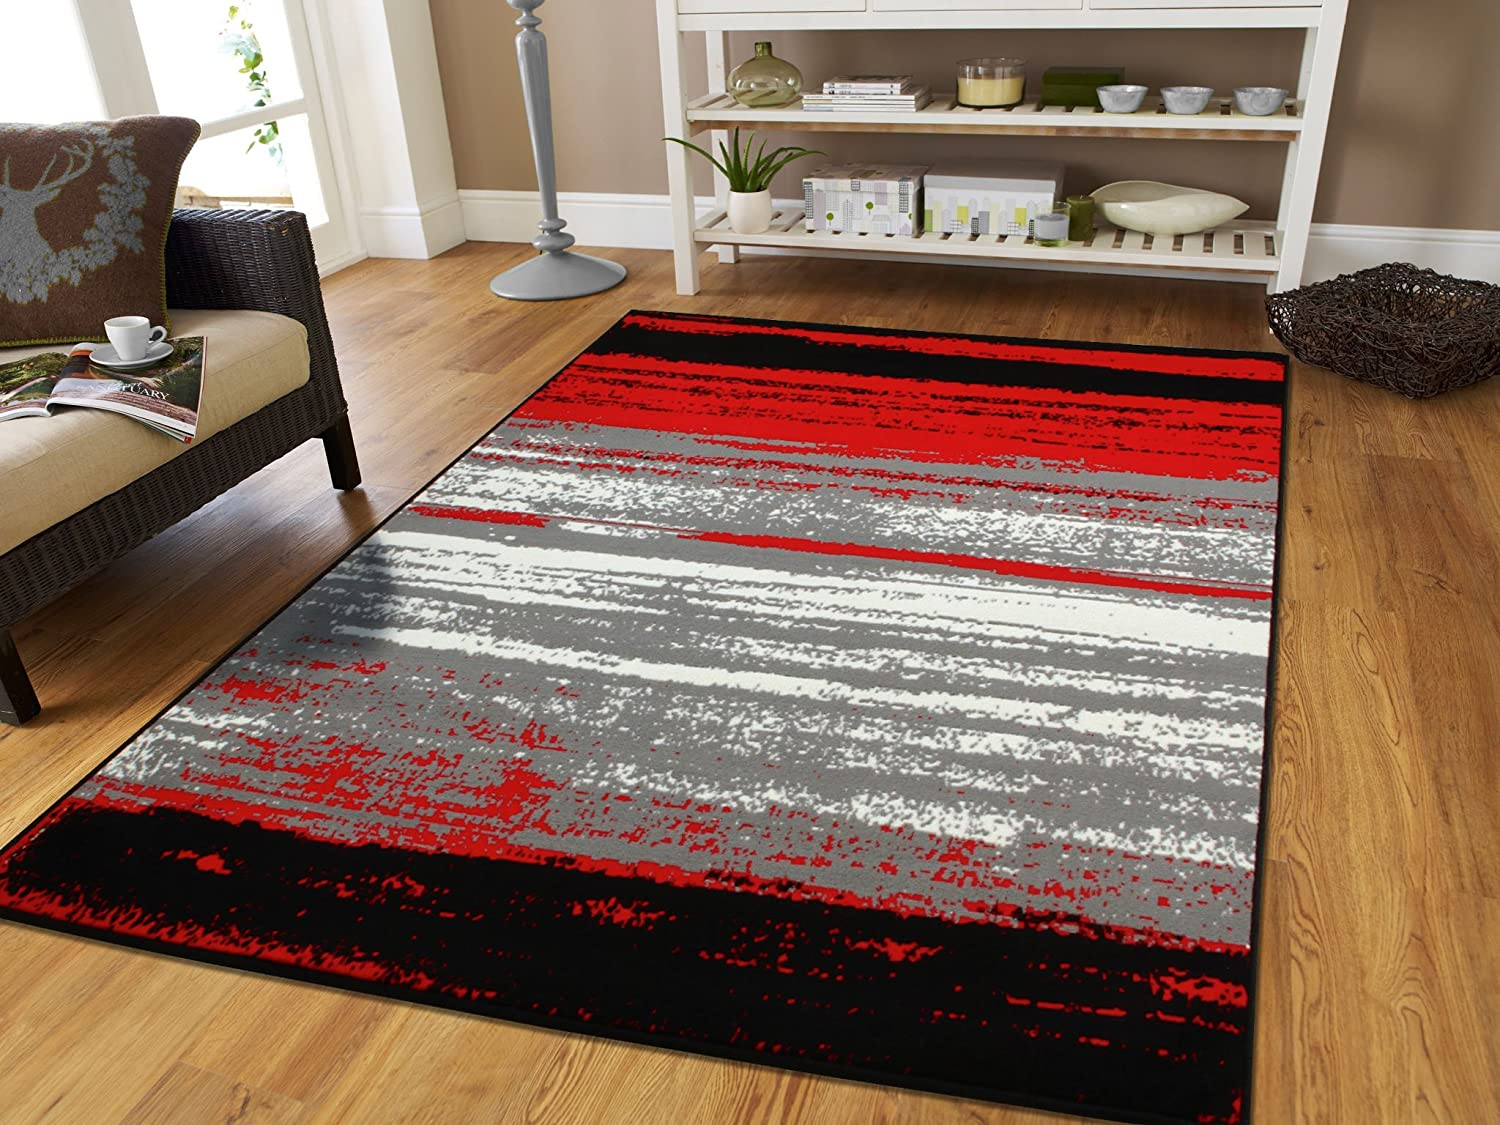 Amazon.com: New Red 5x7 Rugs for Living Room Under 50 Red Black